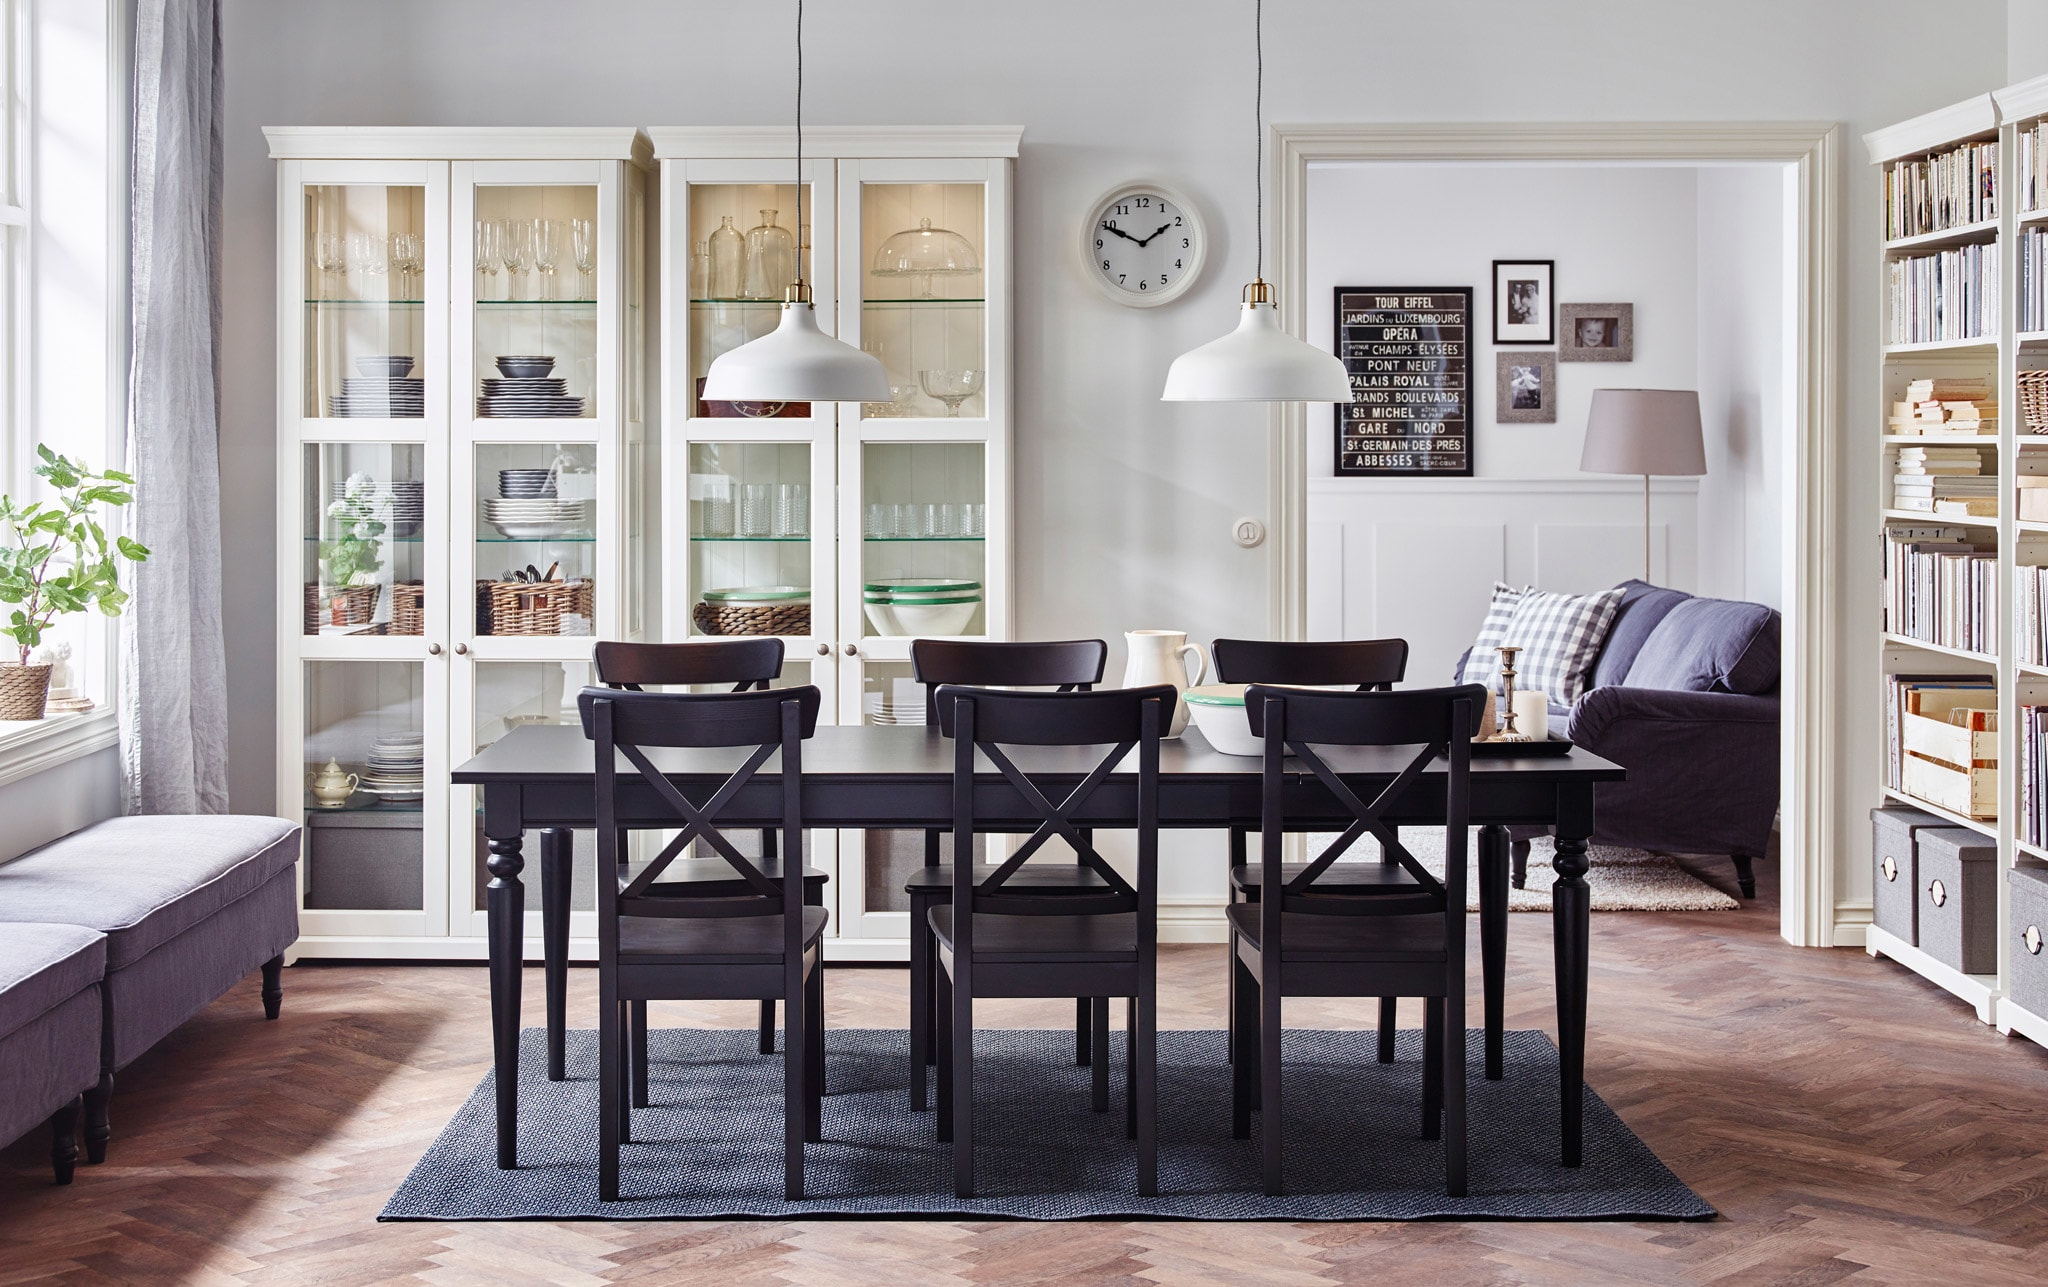 Dining Room Furniture Ideas Ikea in IKEA Living Room Sets Under 300